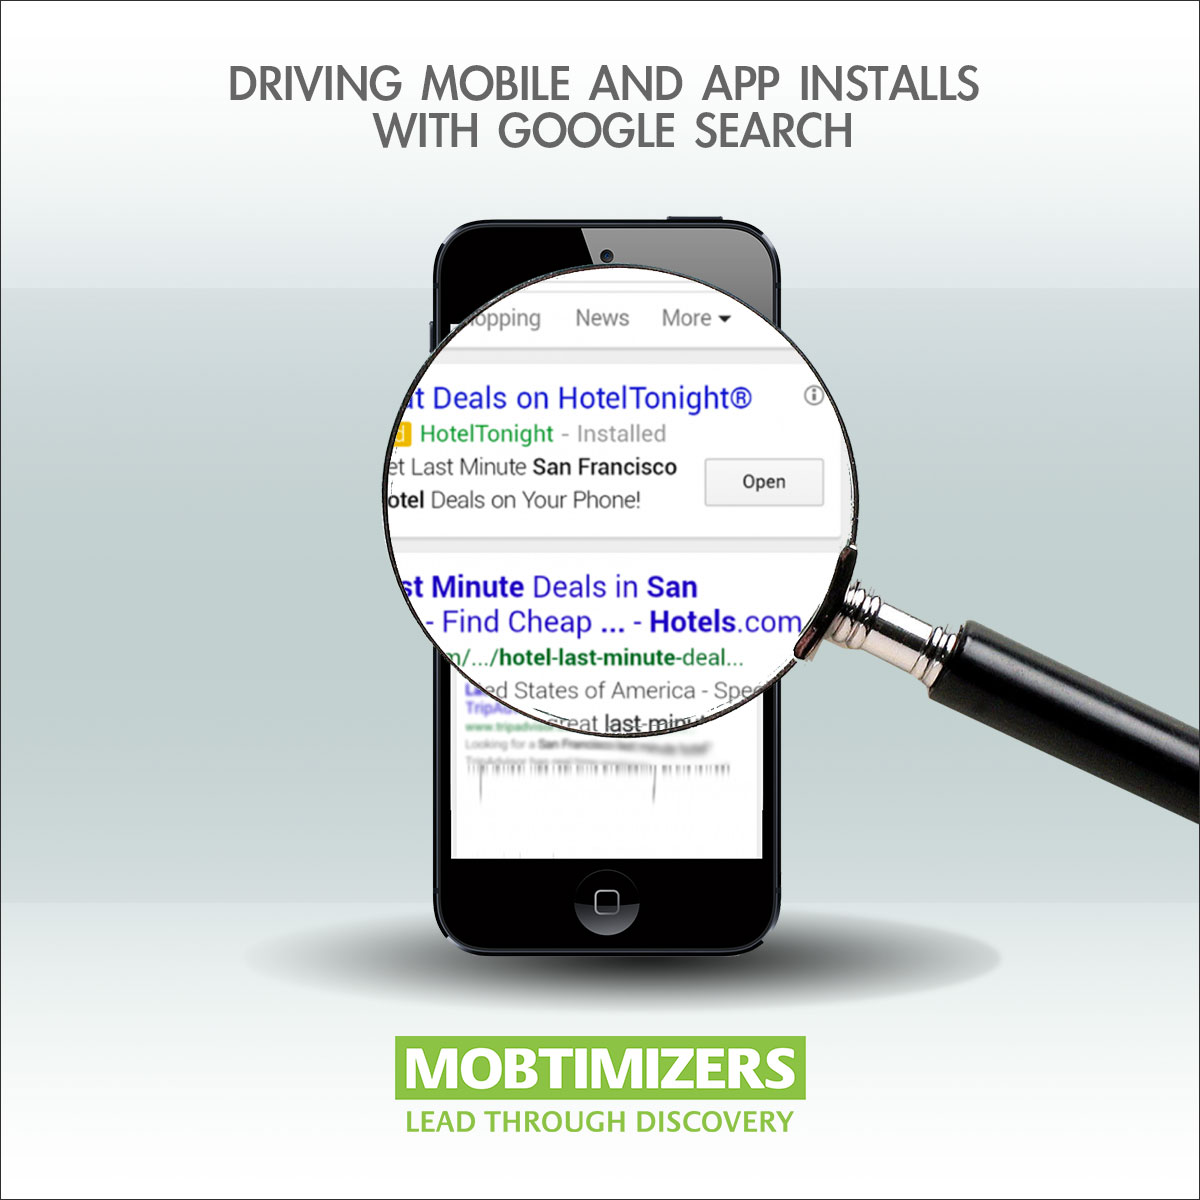 How to drive mobile and app installs with Google Search